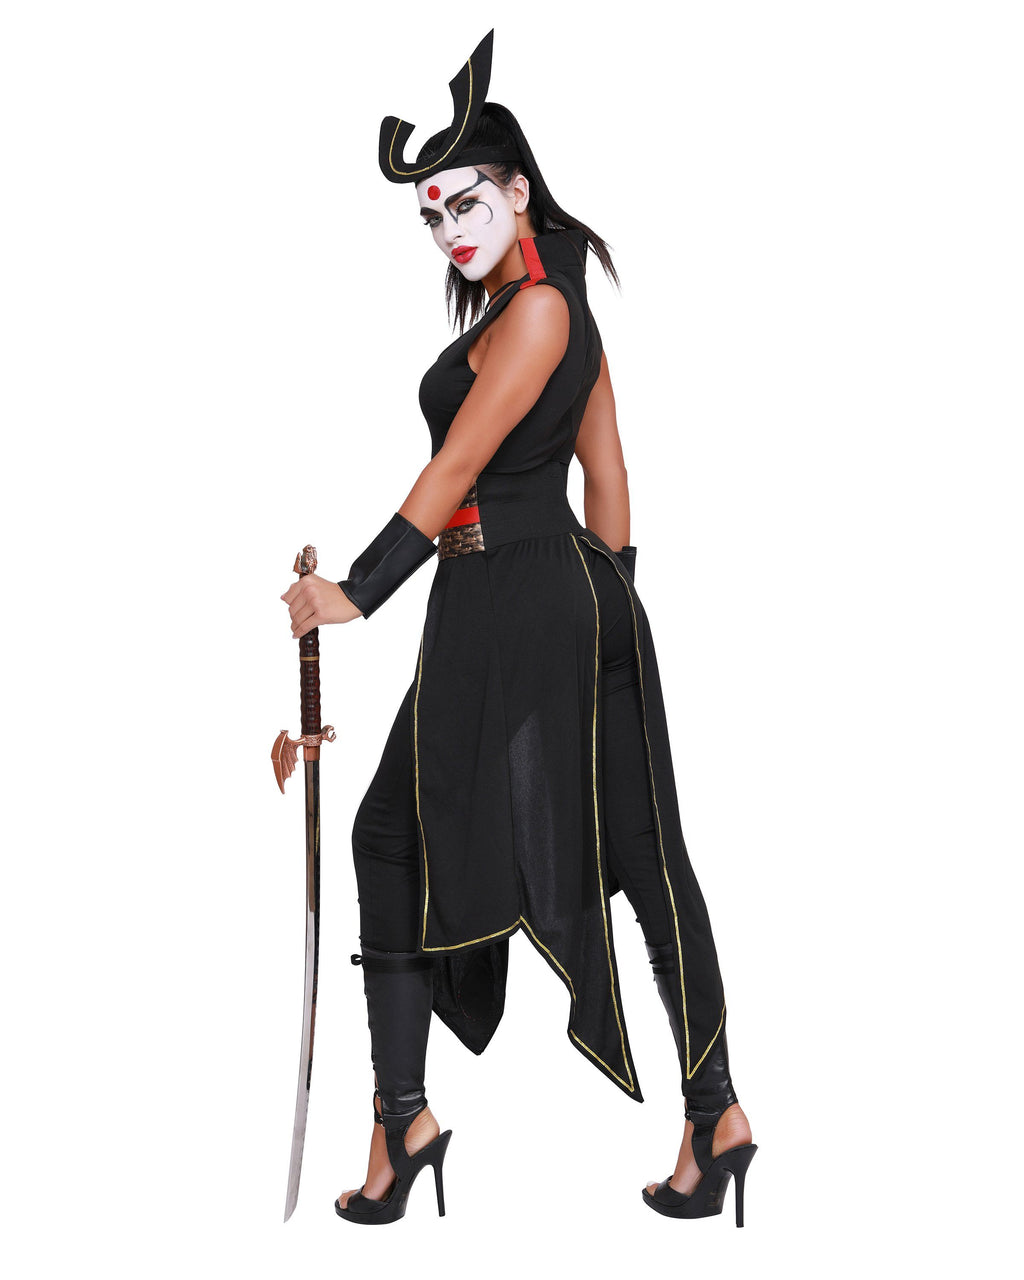 Women's Samurai Women's Costume Dreamgirl Costume